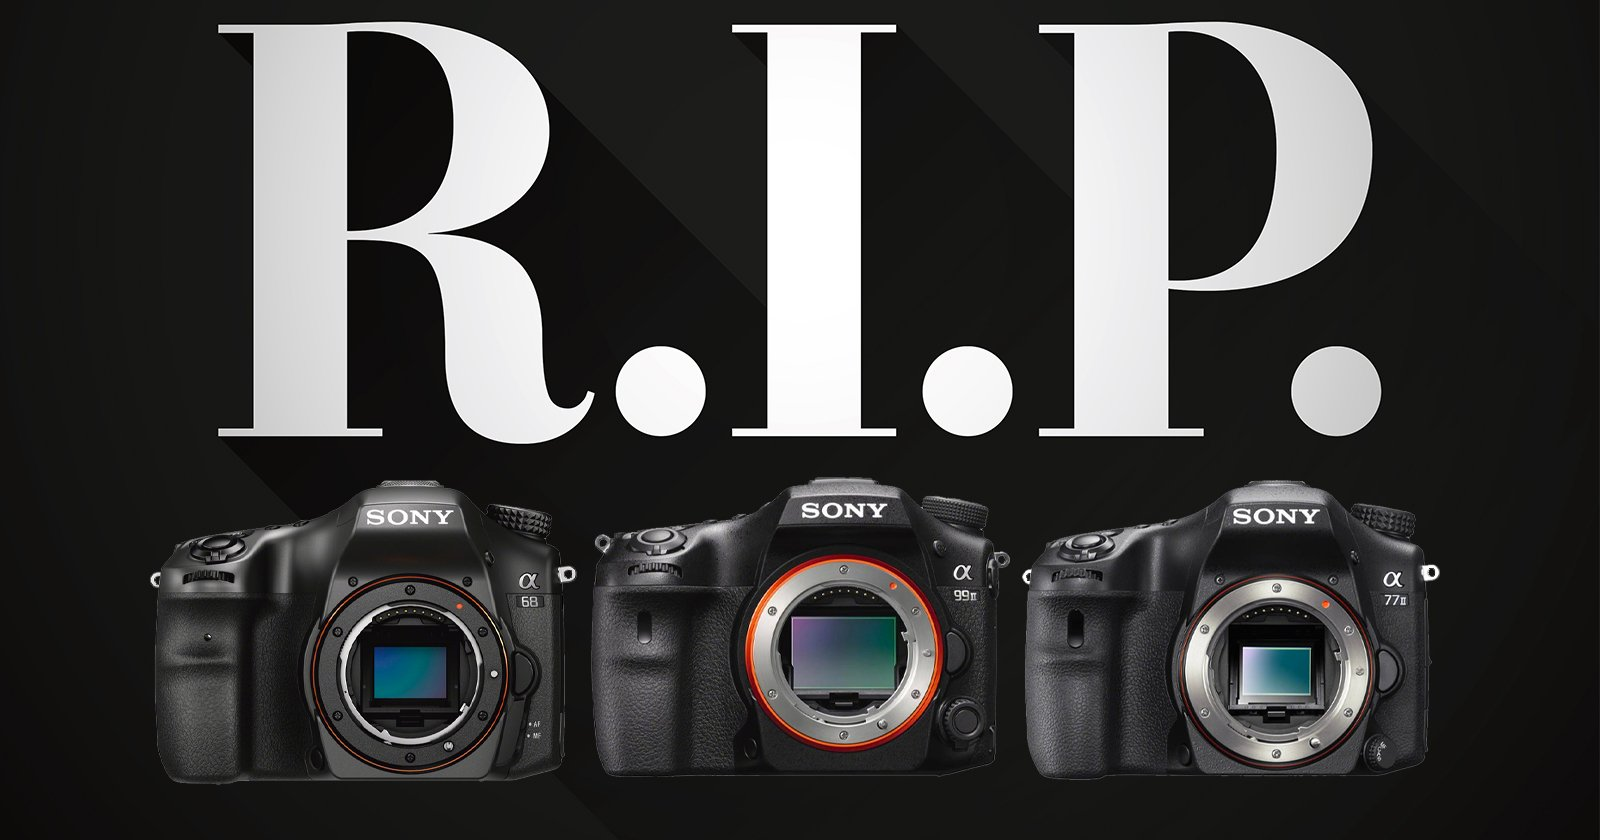 The End of A-Mount: Sony Has Finally Discontinued The Last of its DSLRs